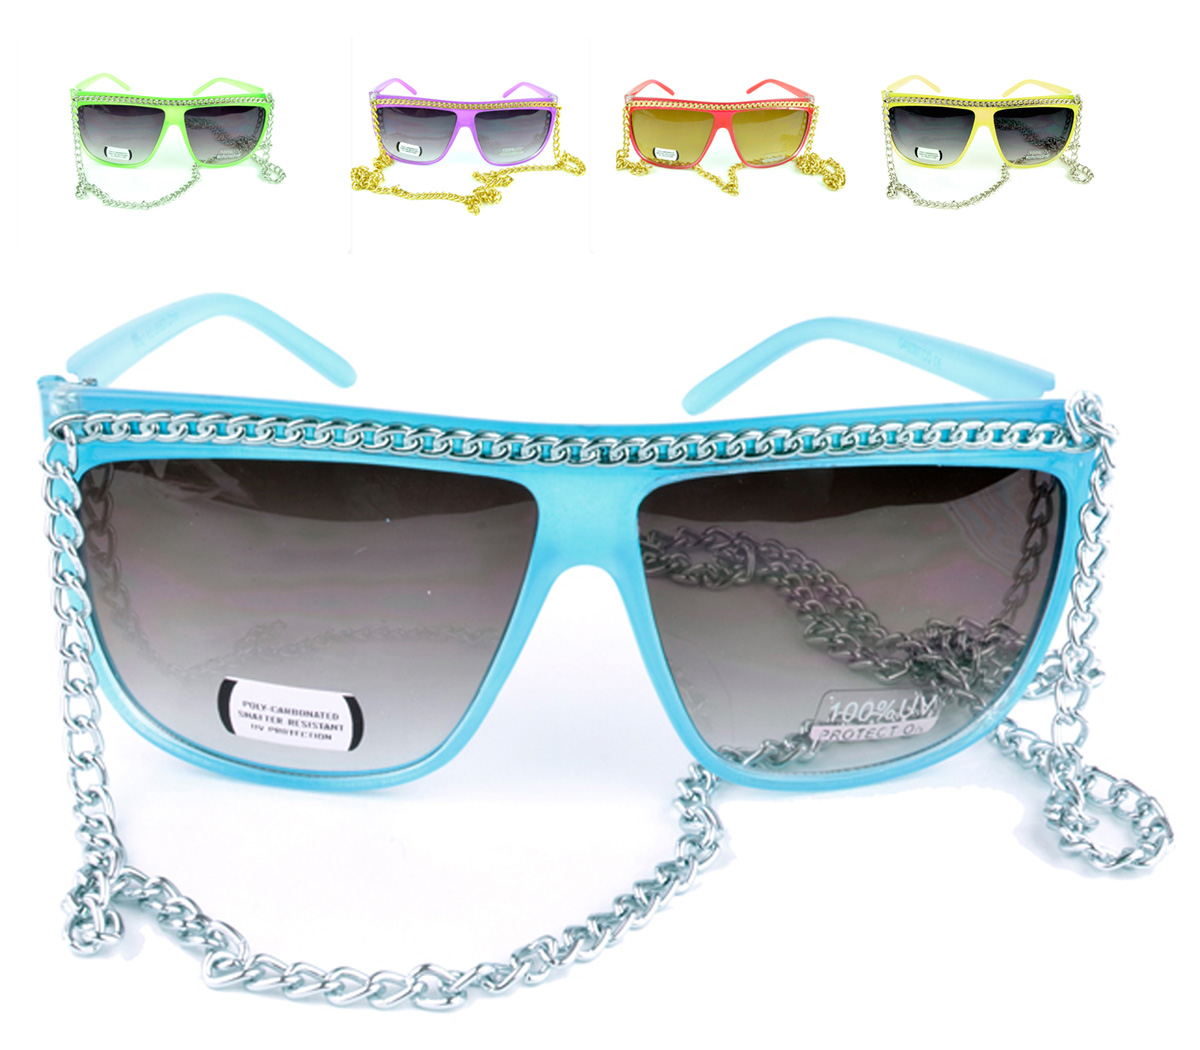 Belle Donne - Women's Hot Celebrity Style Chain Fashion Sunglasses